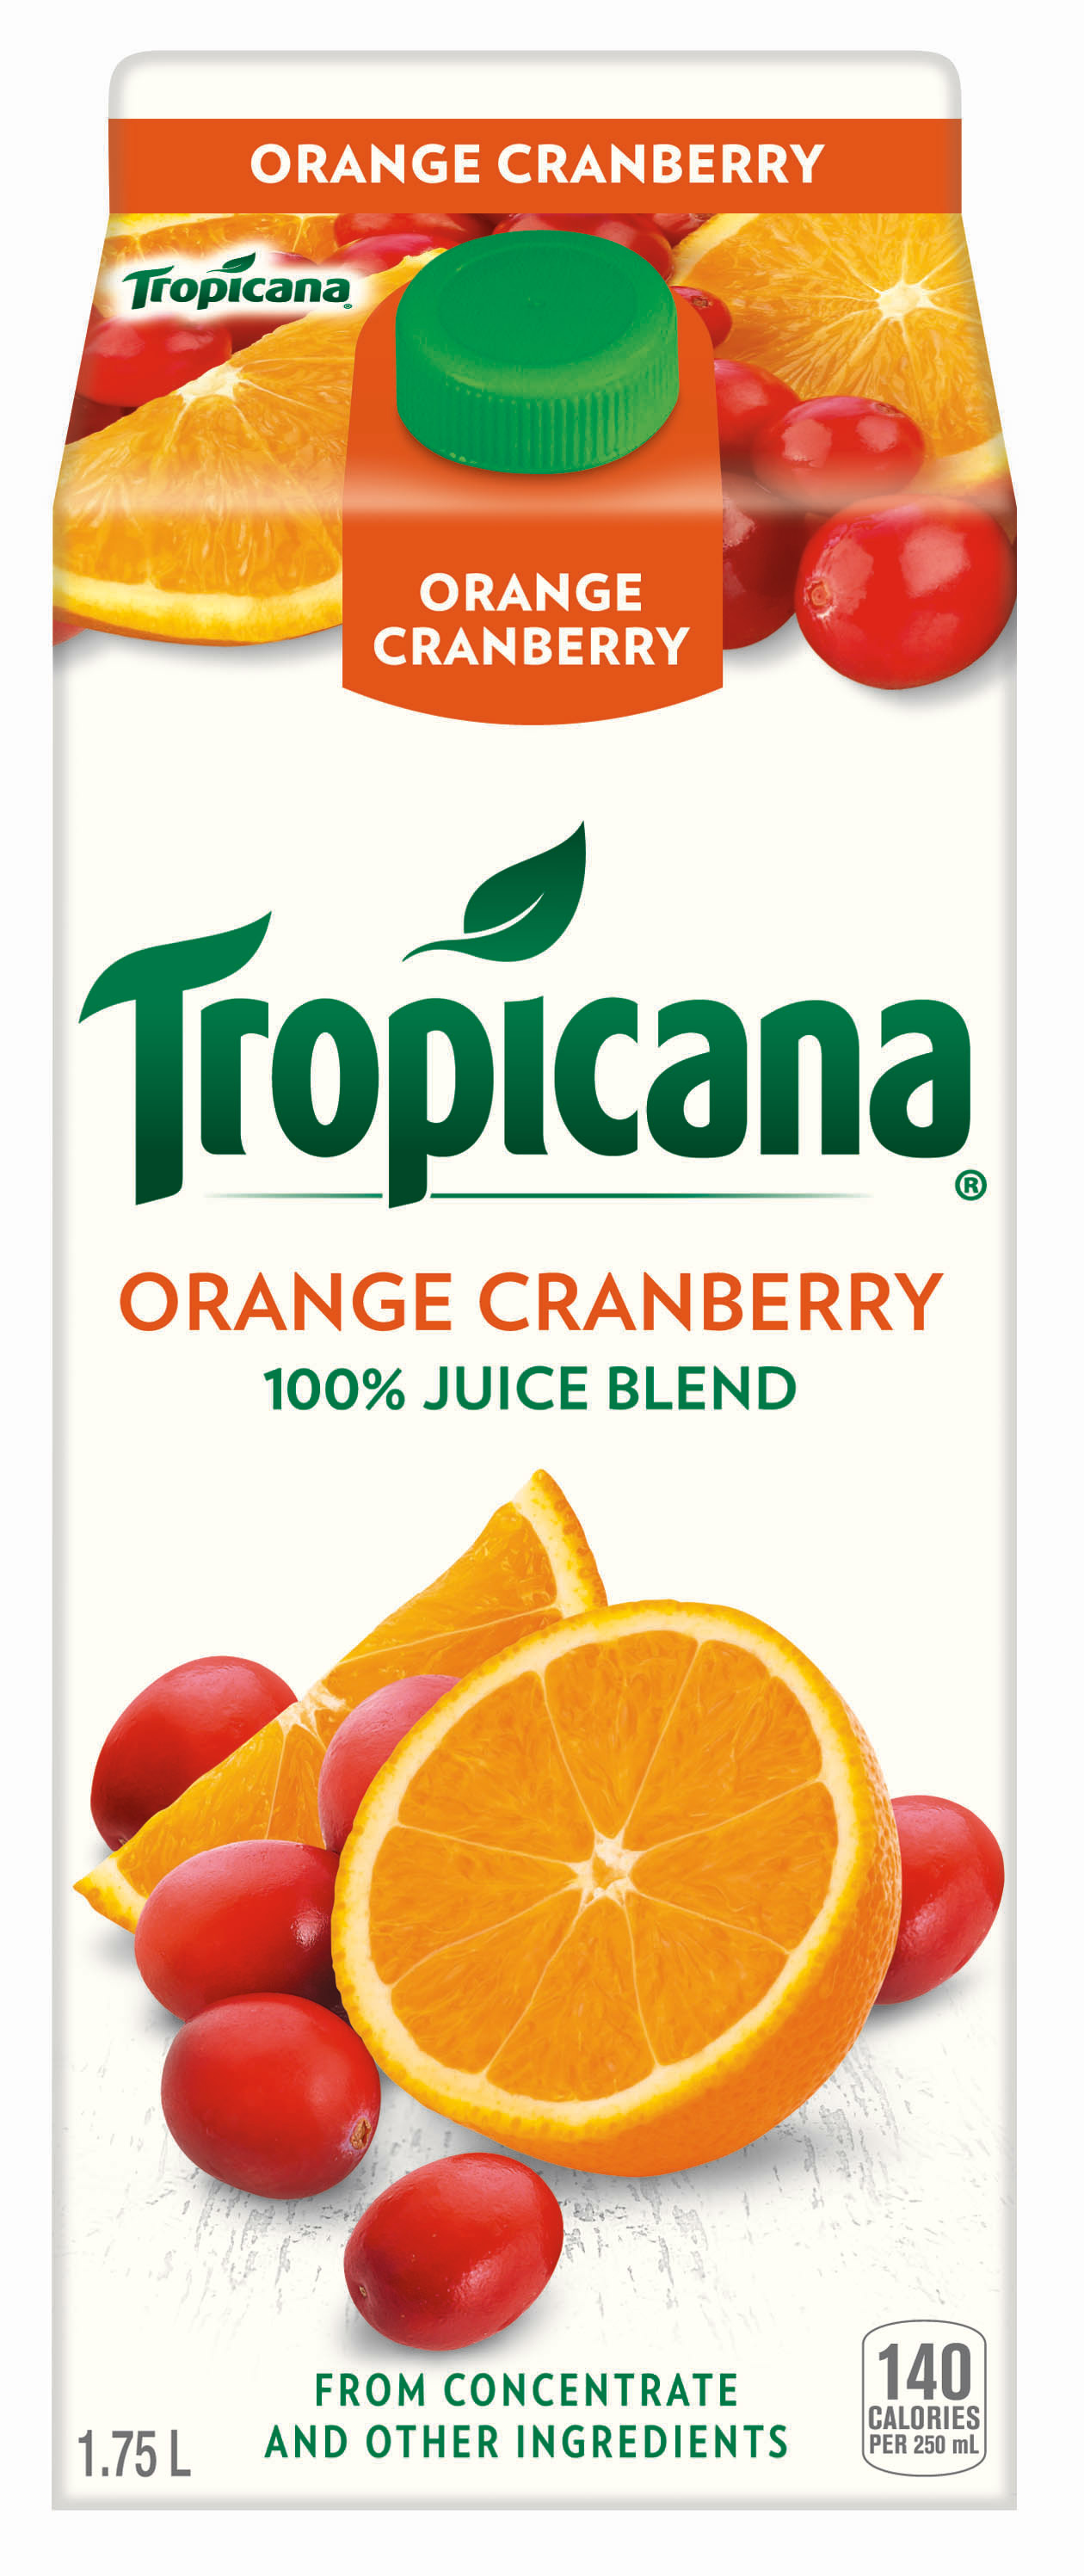 Tropicana® Orange Cranberry Juice Blend from Concentrate